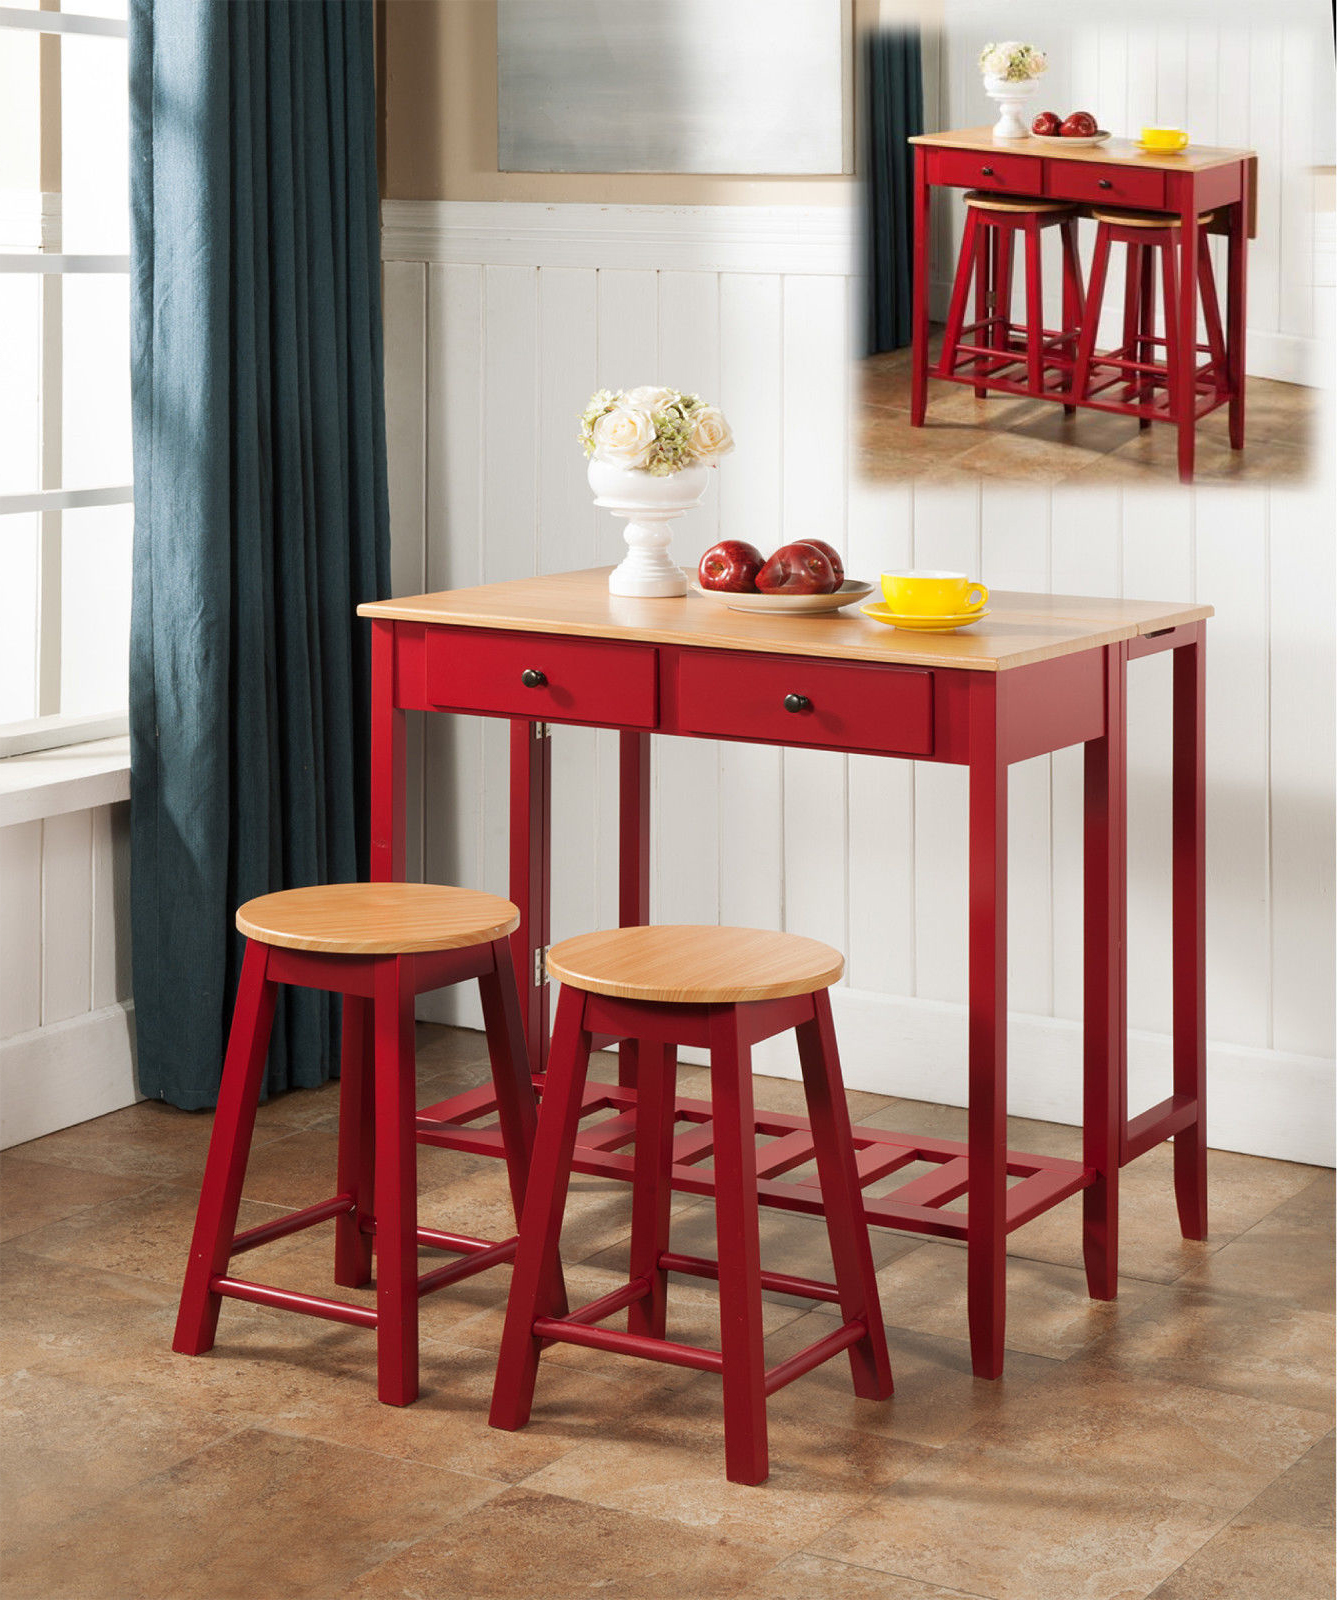 kitchen dinette fauct rave 3 piece red natural top wood contemporary breakfast pub set folding drop down table 2 stools storage drawers walmart com